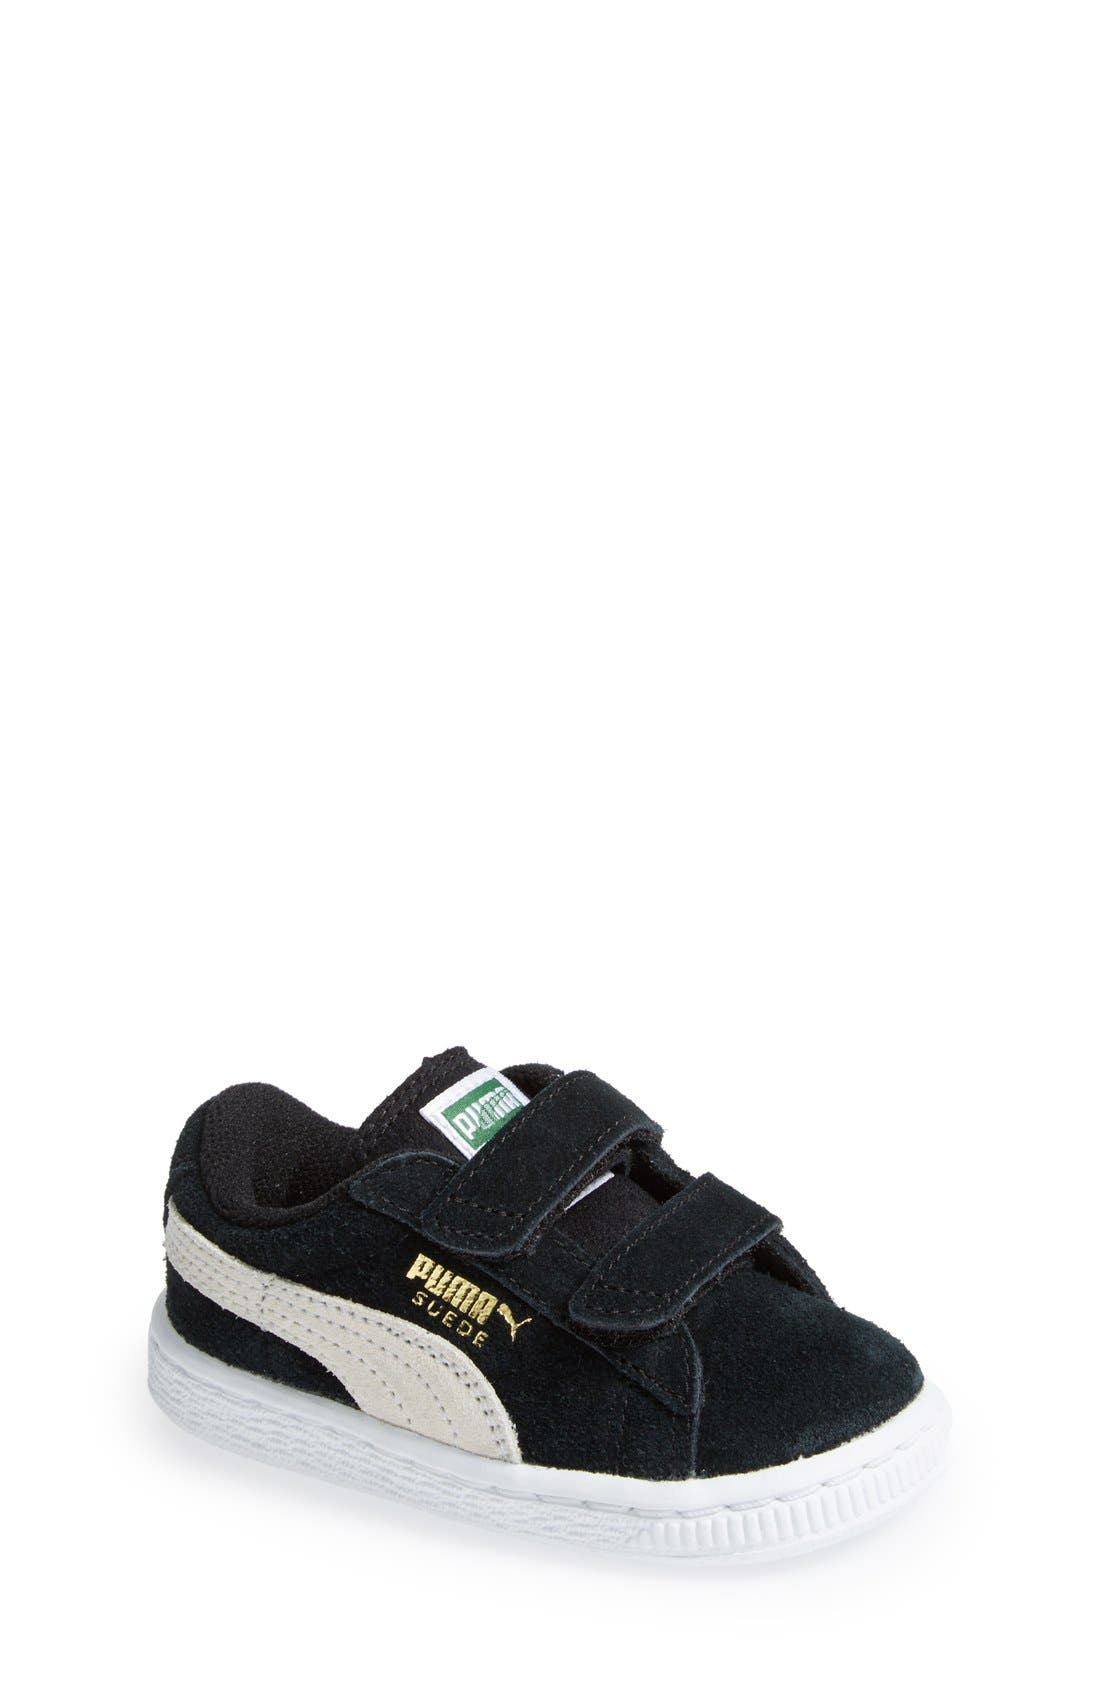 Suede Sneaker,                         Main,                         color, Black/ White